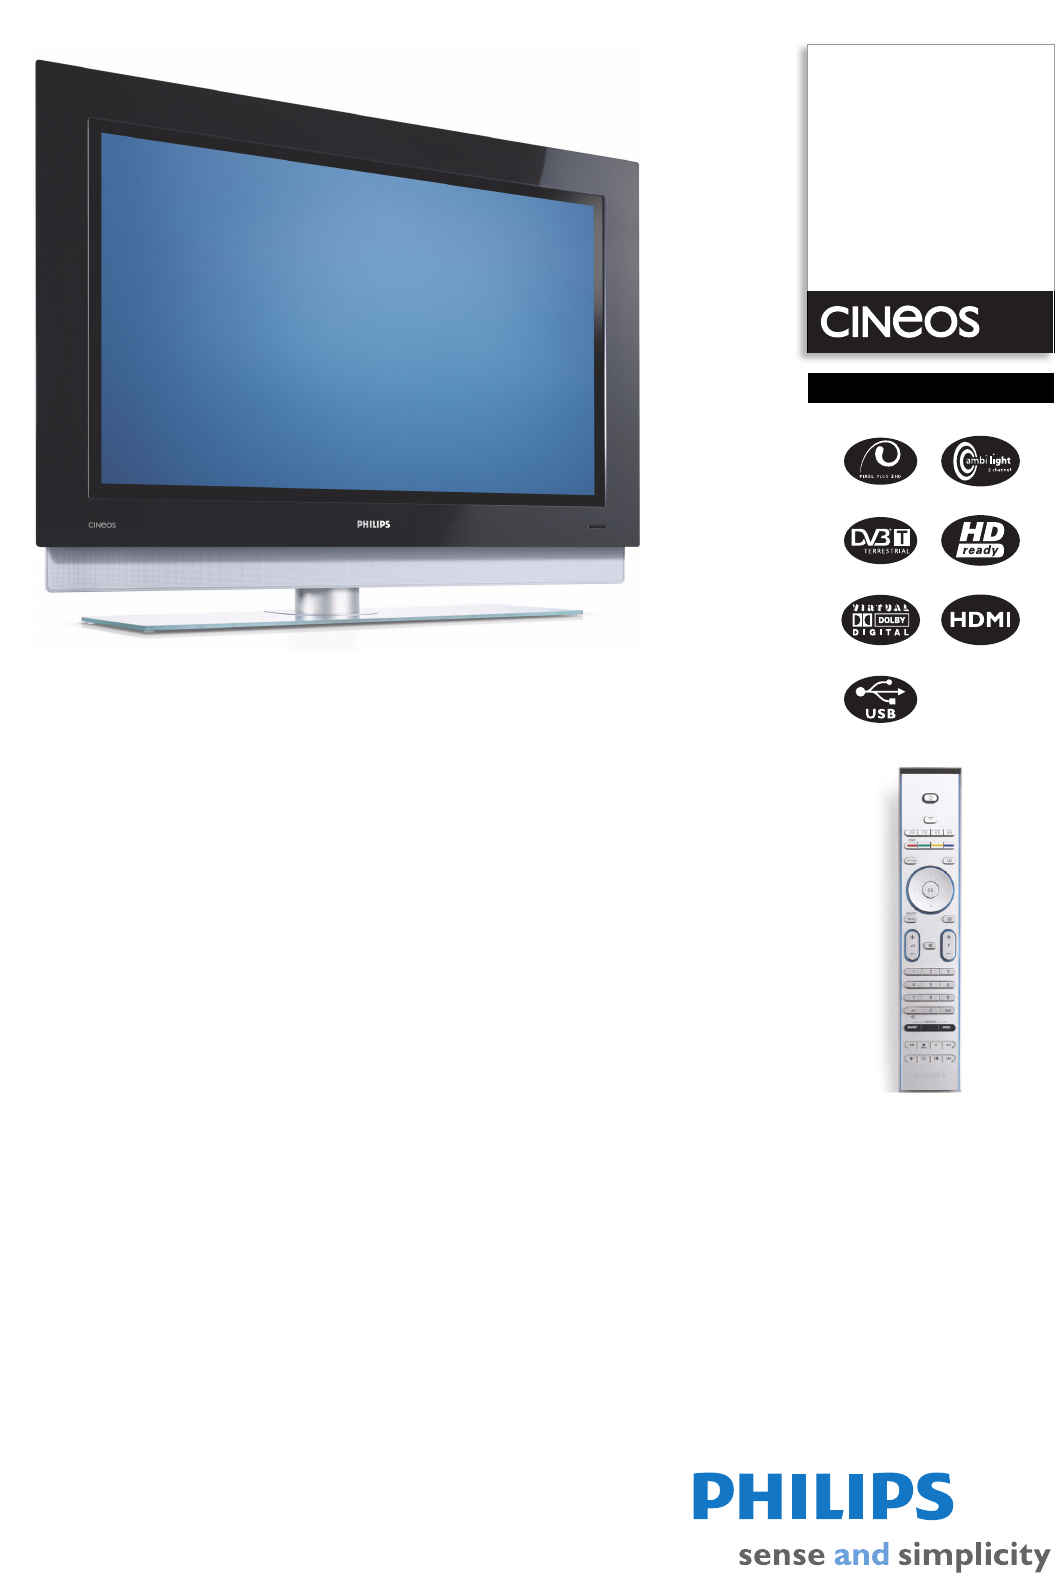 philips flat panel television 42pf9631 user guide manualsonline com rh tv manualsonline com Philips Universal Remote Control Manual Philips Instruction Manuals